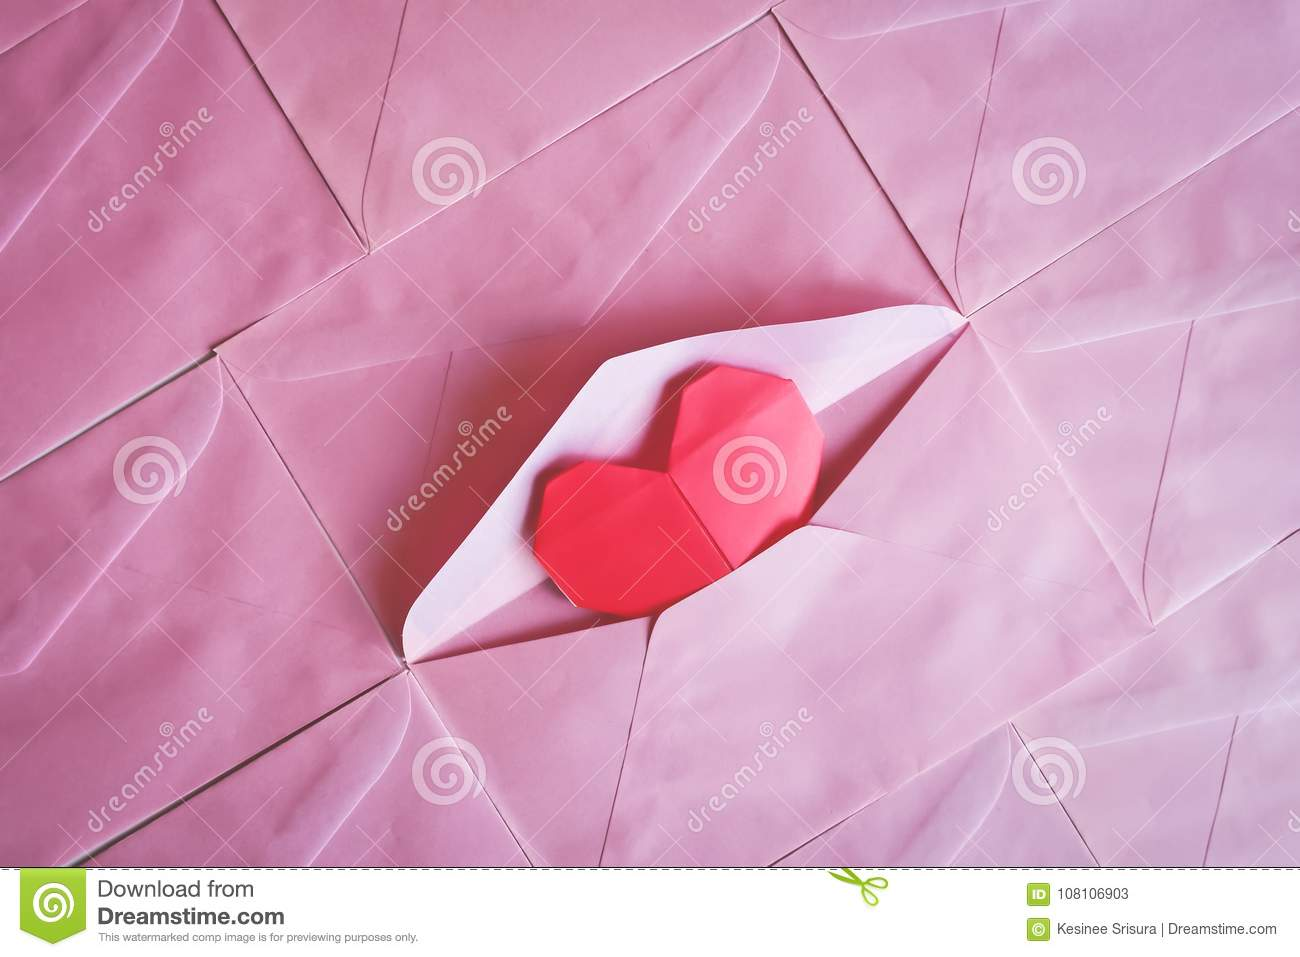 Red heart paper origami in pink envelope background